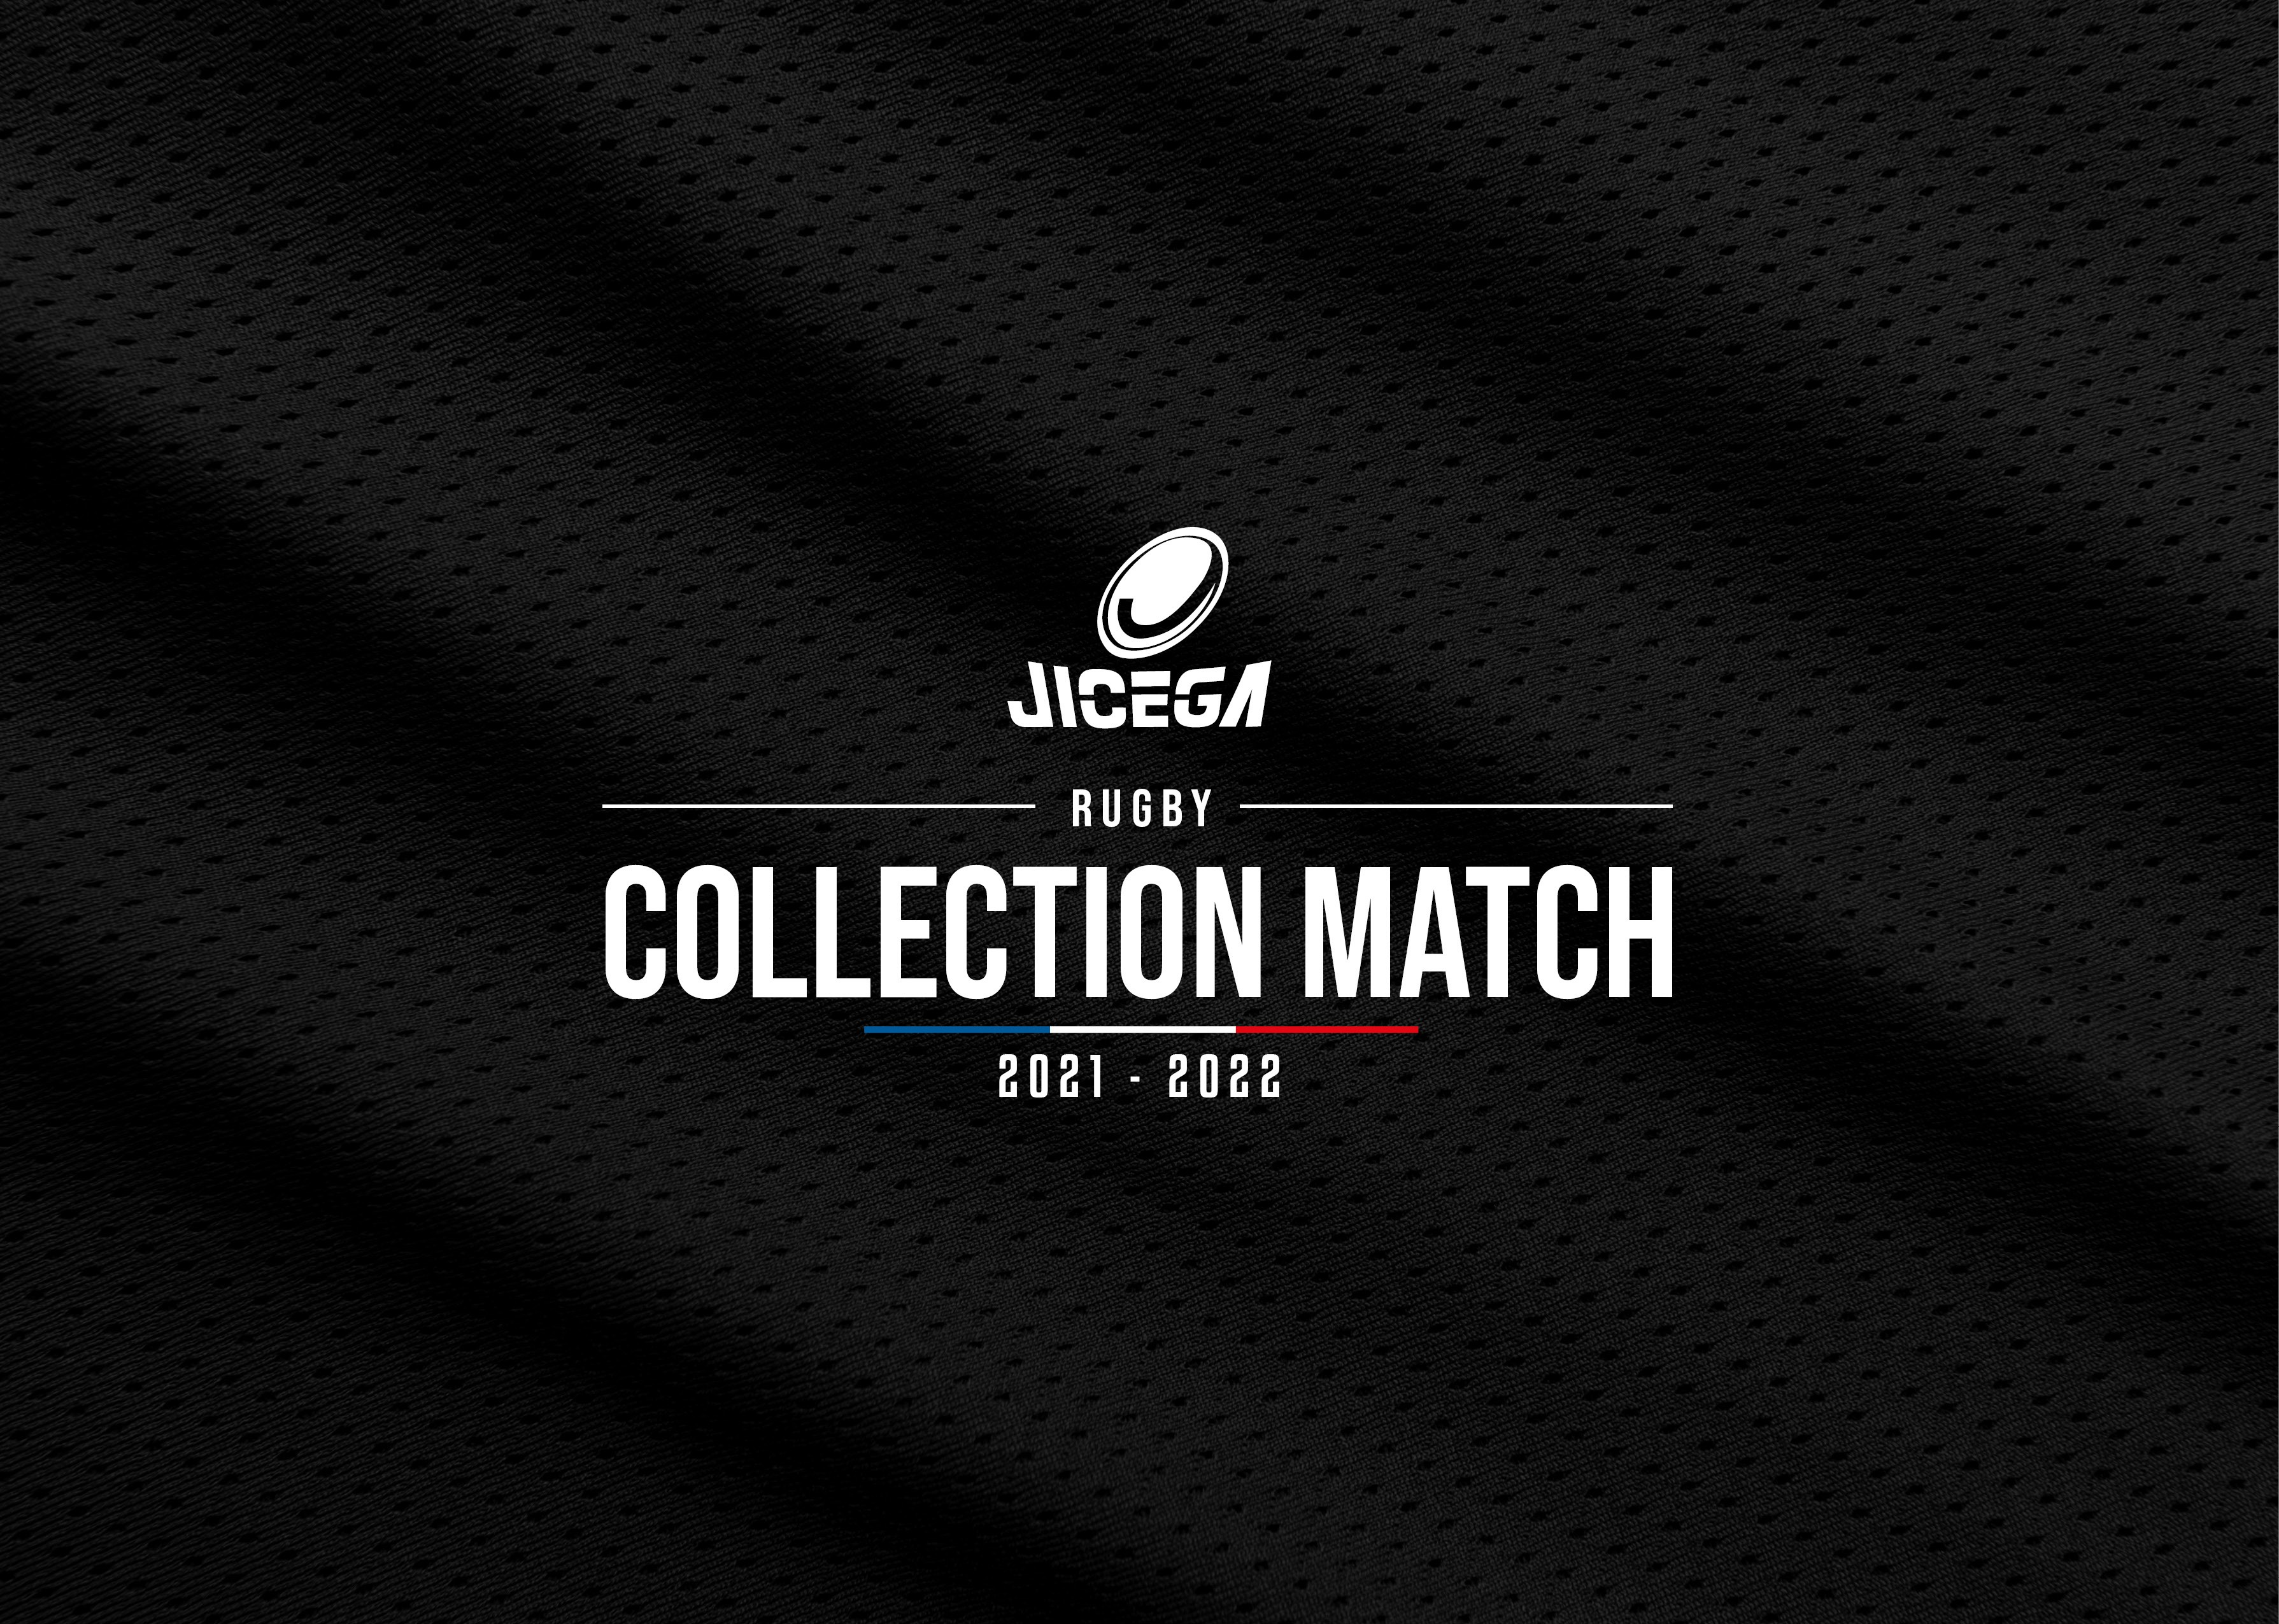 COLLECTION MATCH 2021-2022